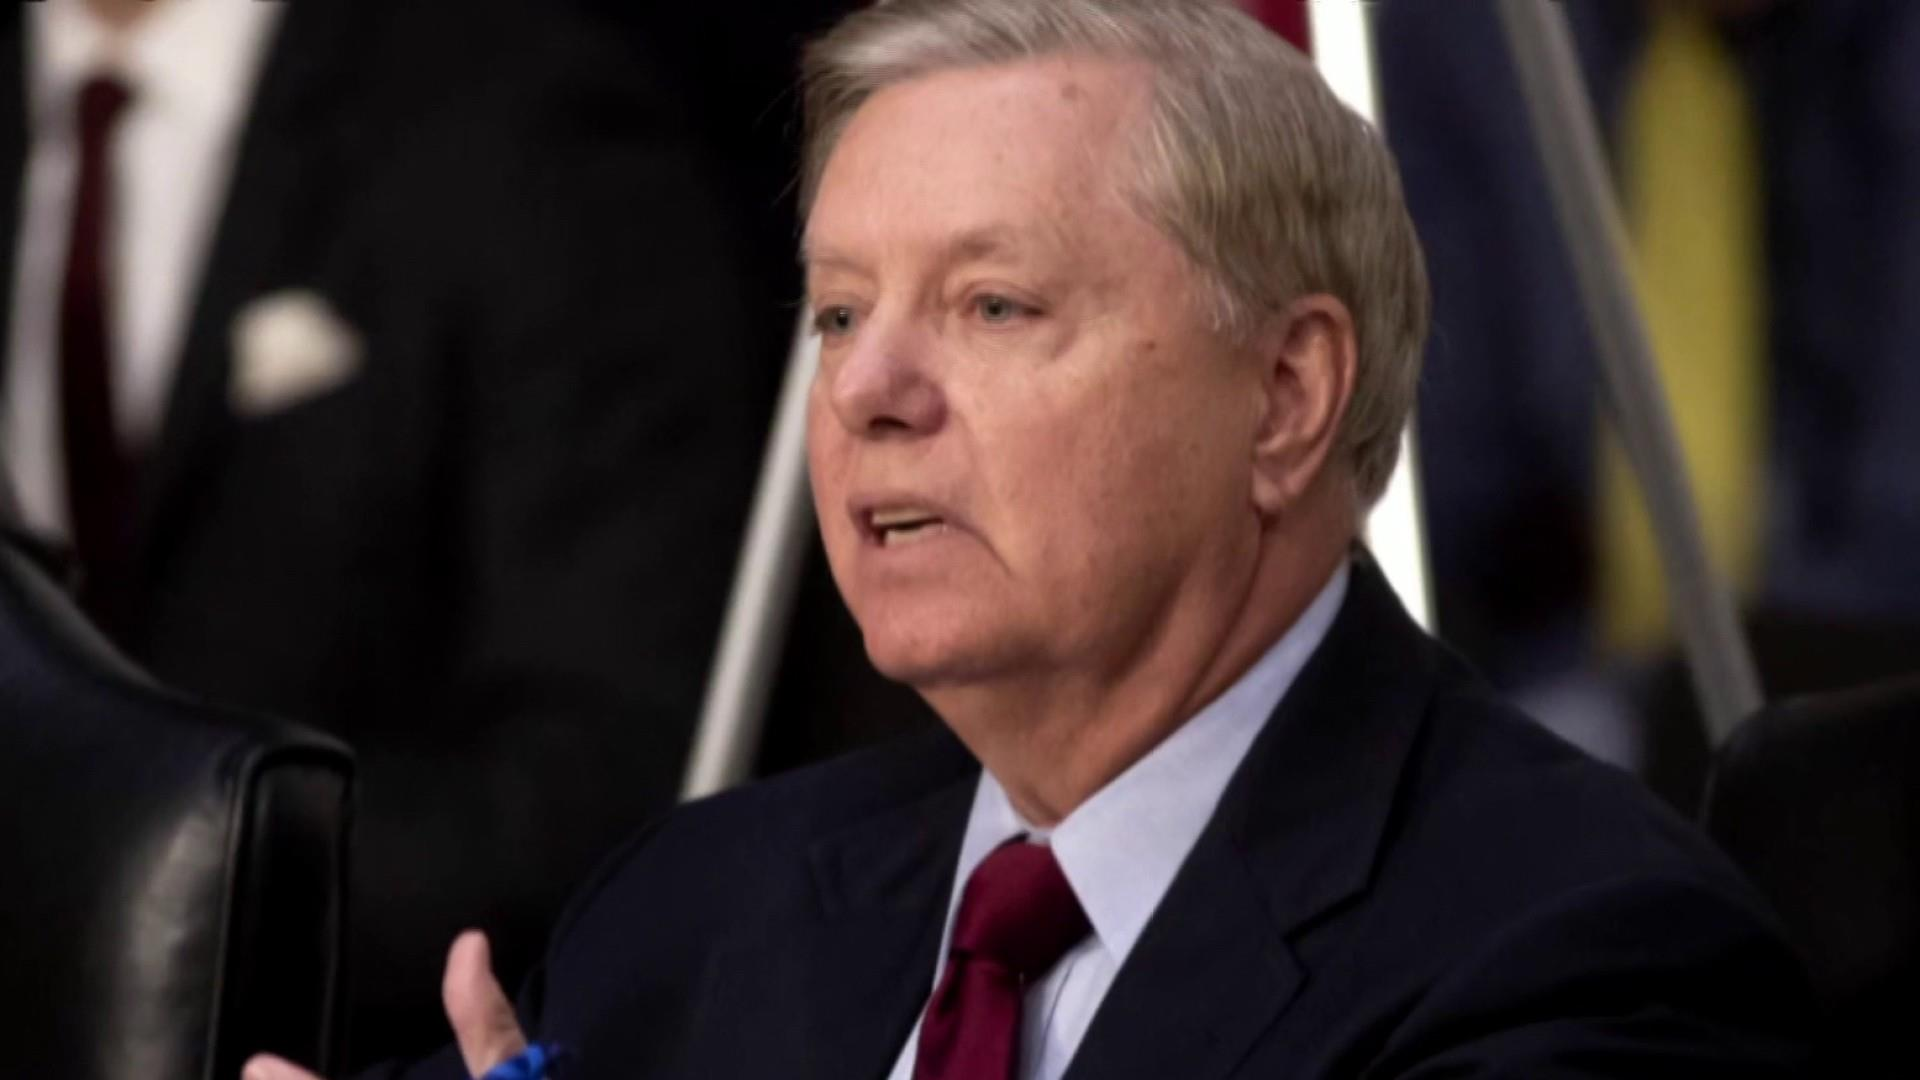 A new low for Sen. Graham and for GOP under Trump